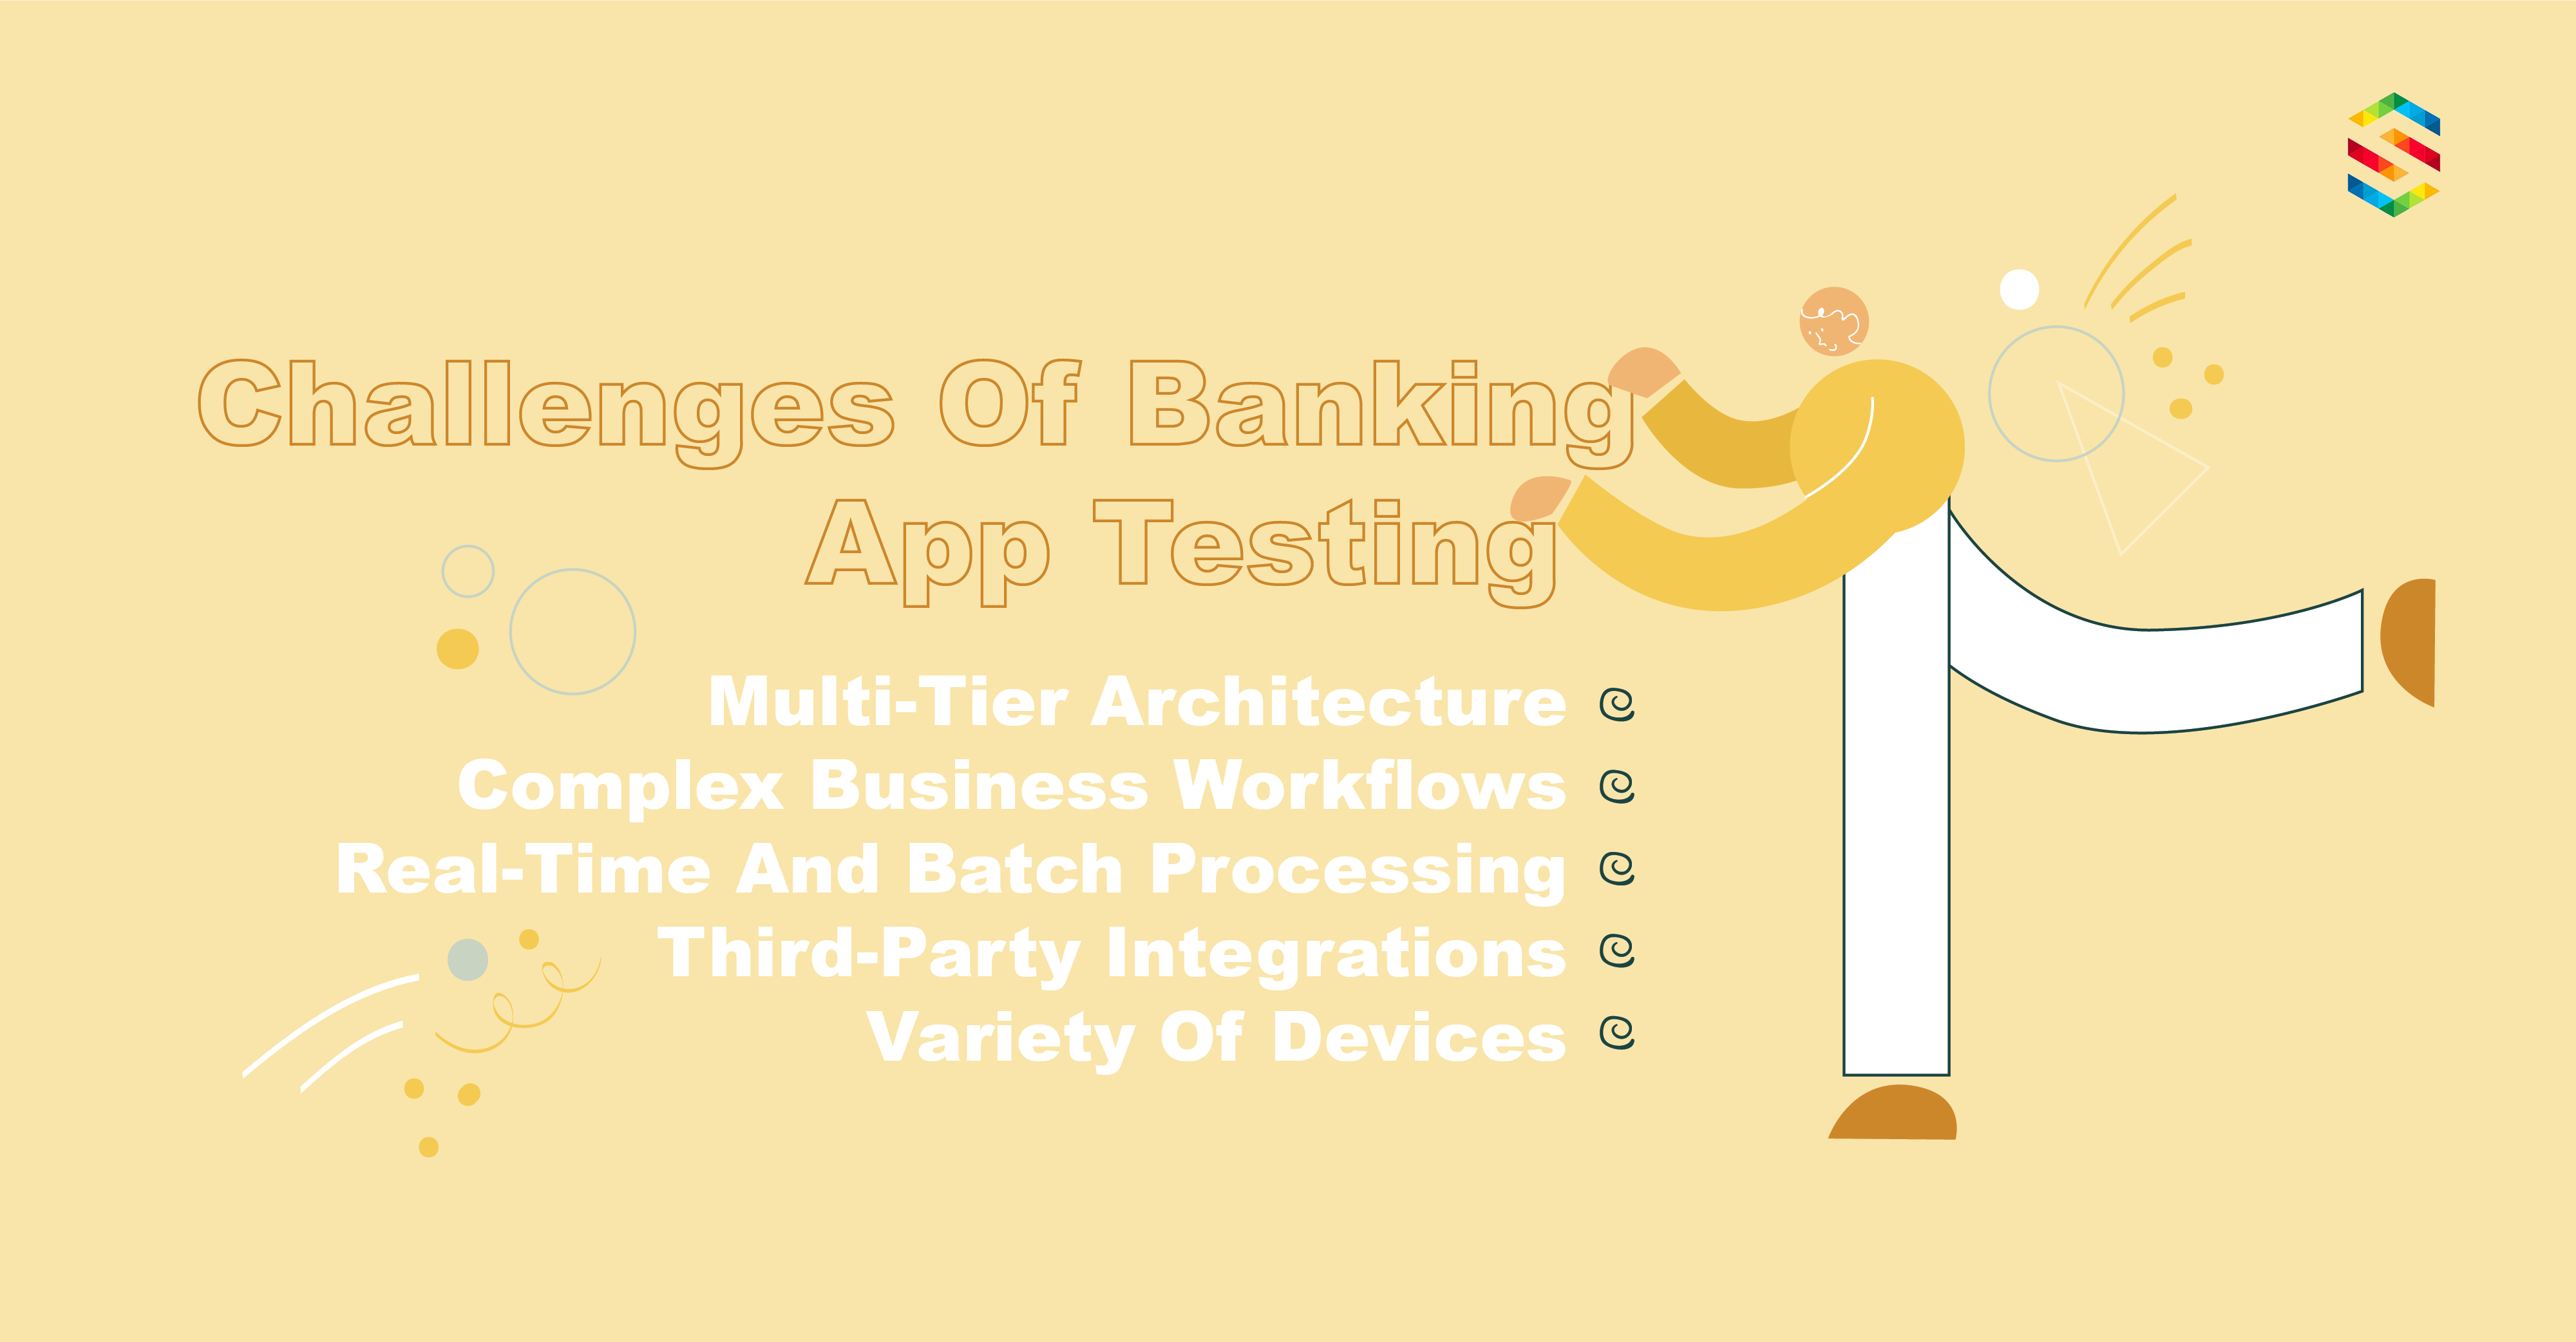 Challenges of the banking app testing